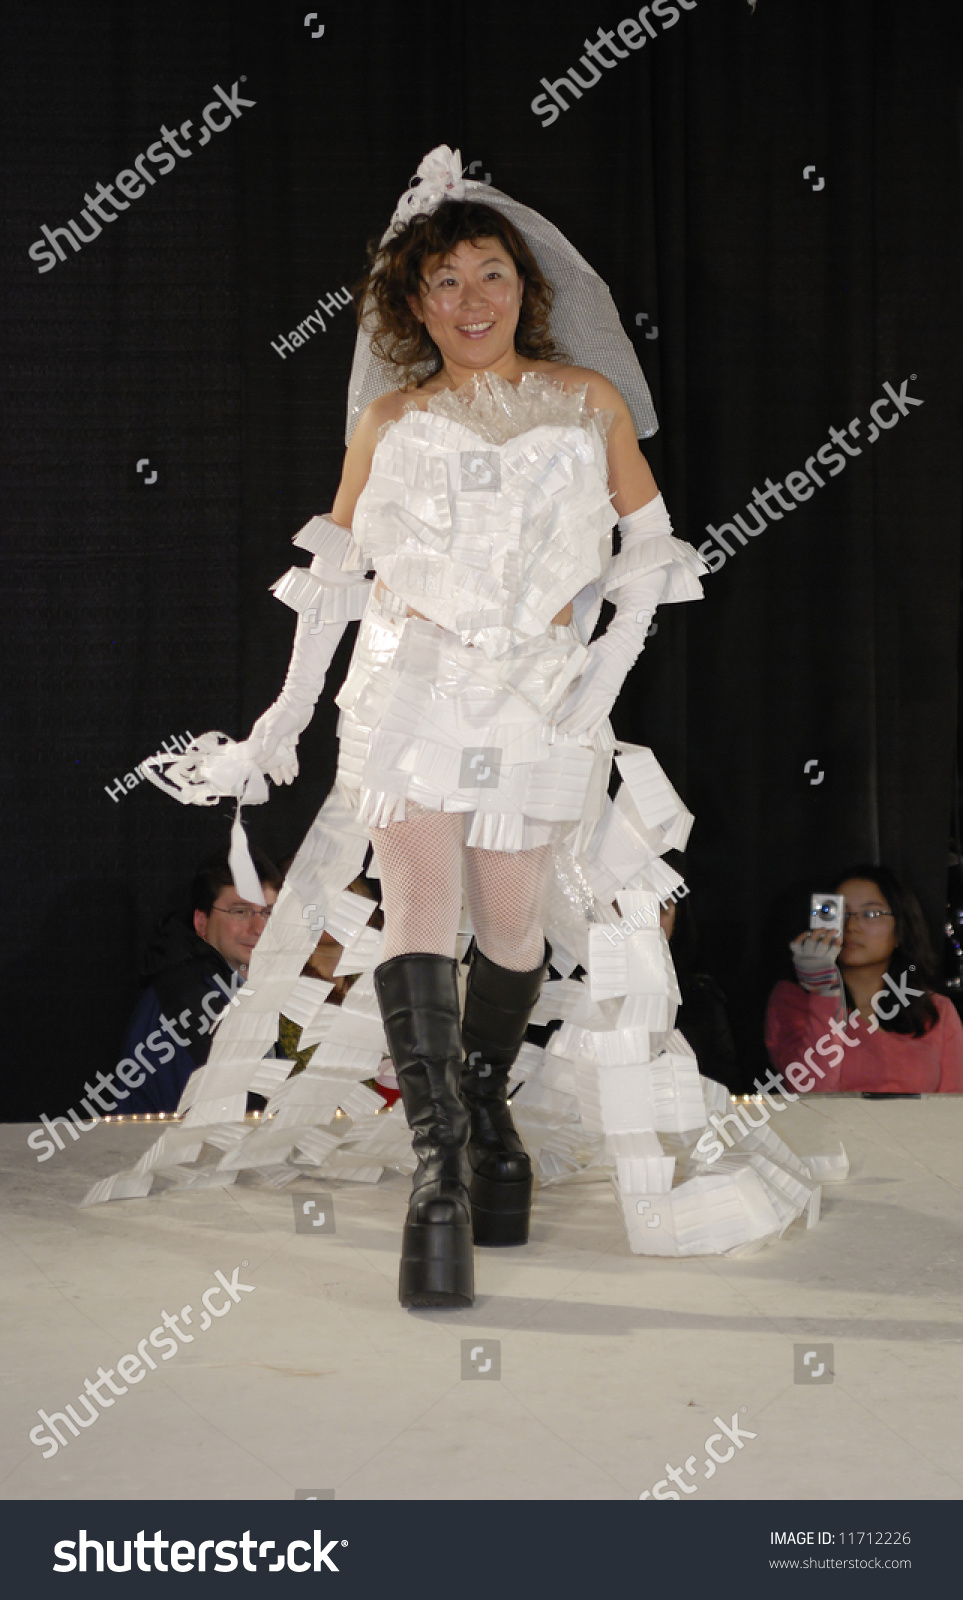 Art to recycled wear fashion show recommendations dress for on every day in 2019